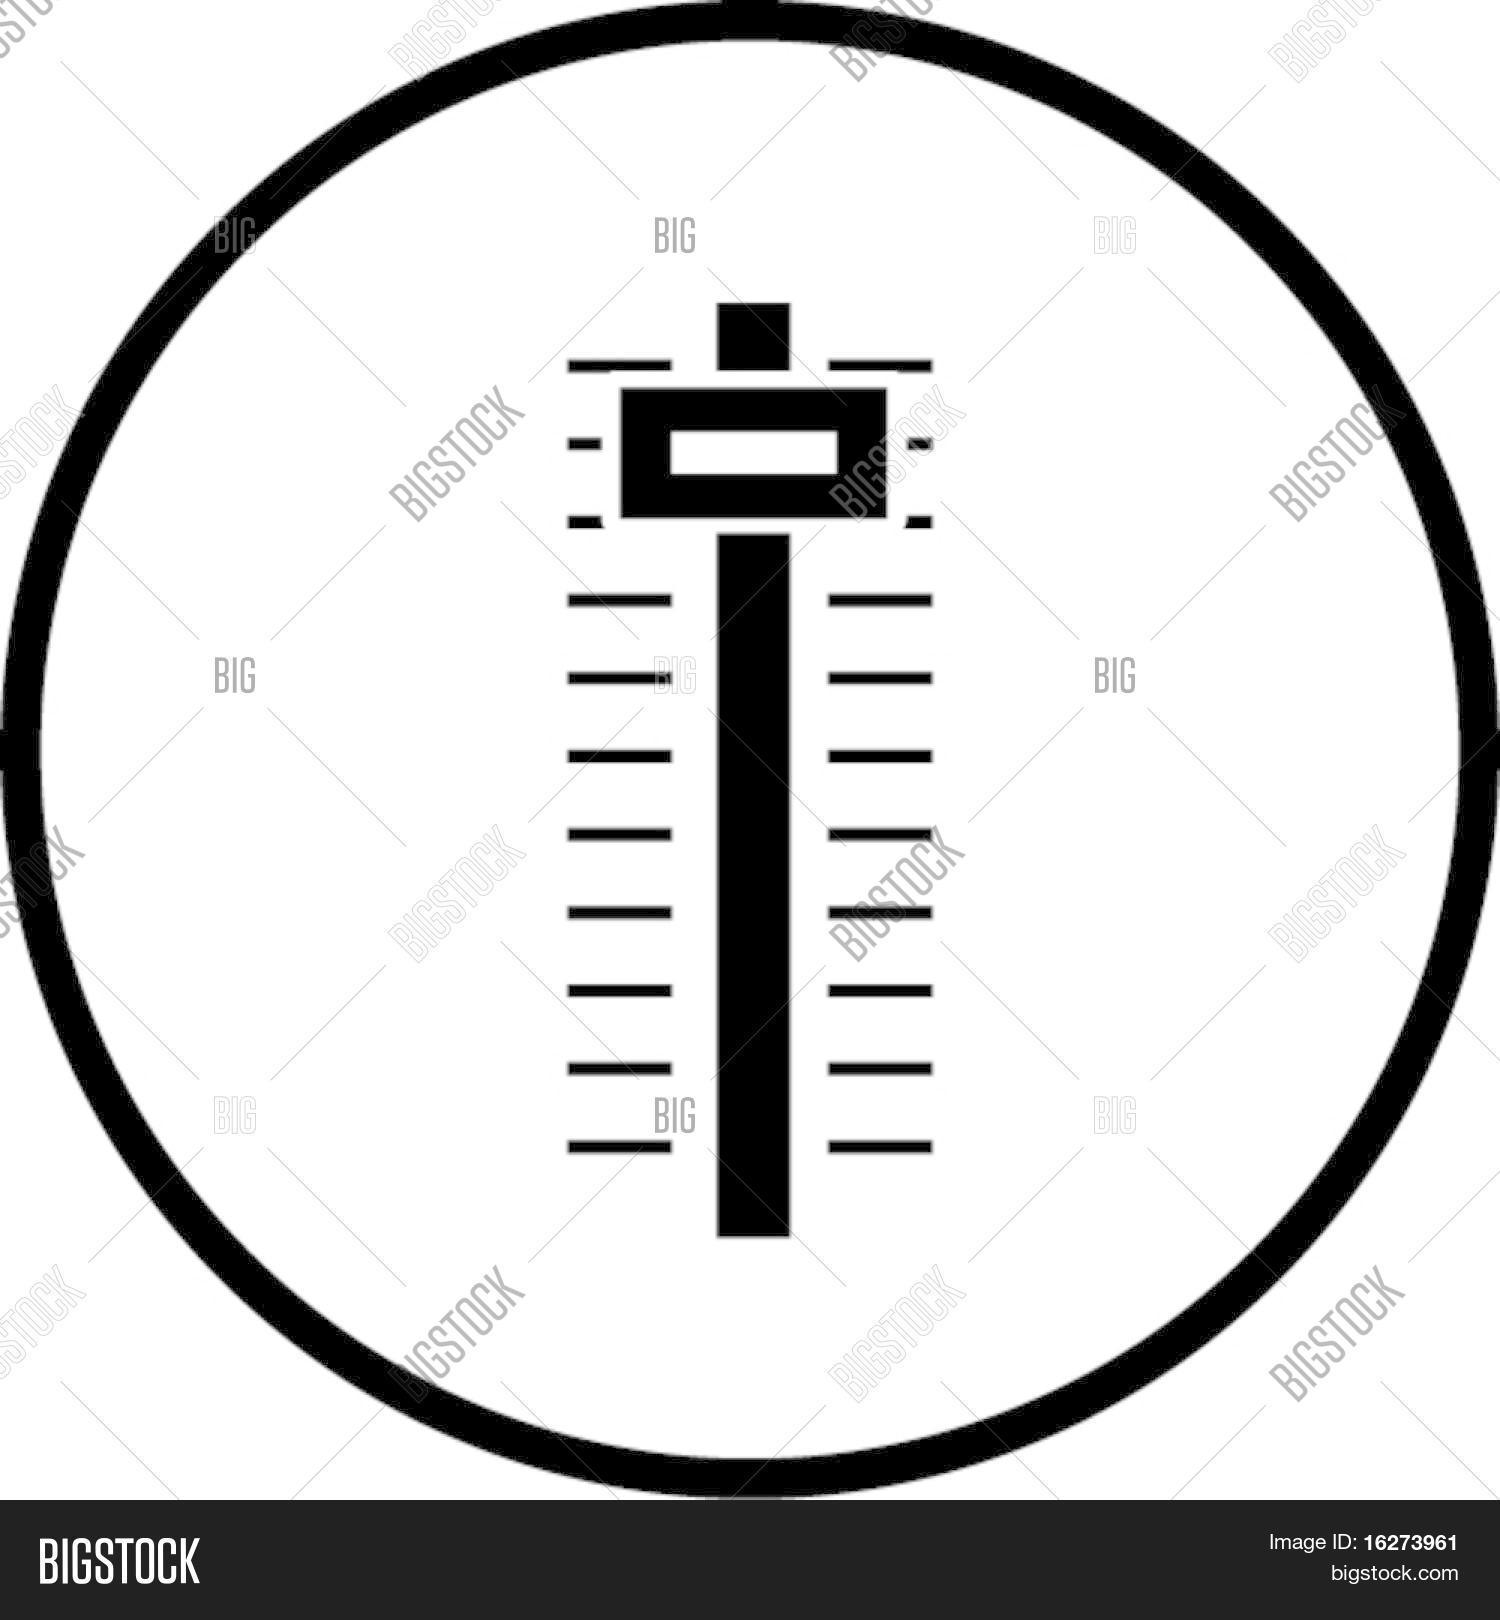 Audio Volume Slider Control Symbol Vector & Photo | Bigstock